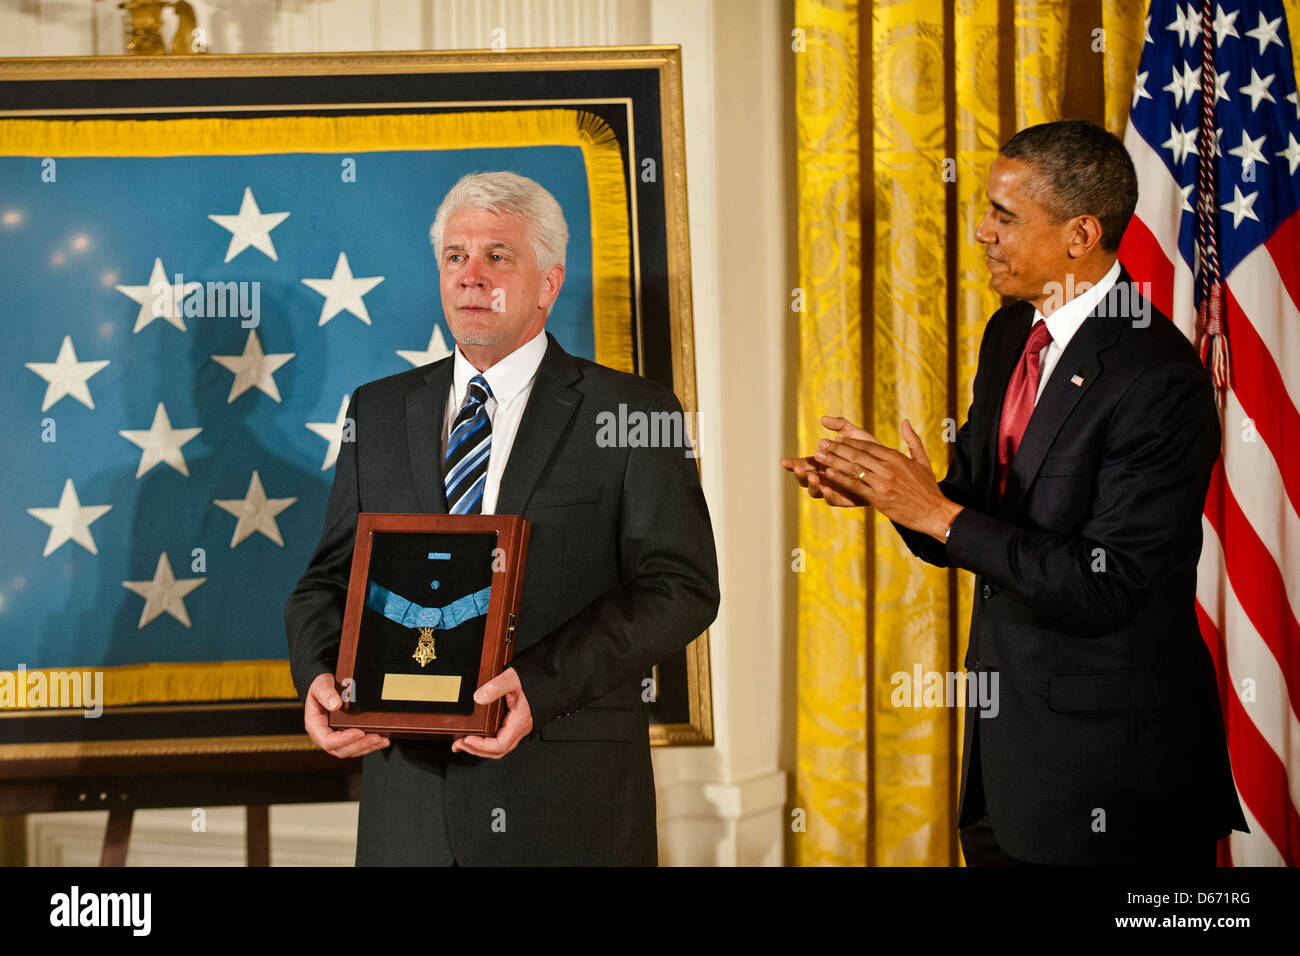 US President Barack Obama awards the Medal of Honor to US Army Chaplain Capt. Emil Kapaun, accepted posthumously - Stock Image